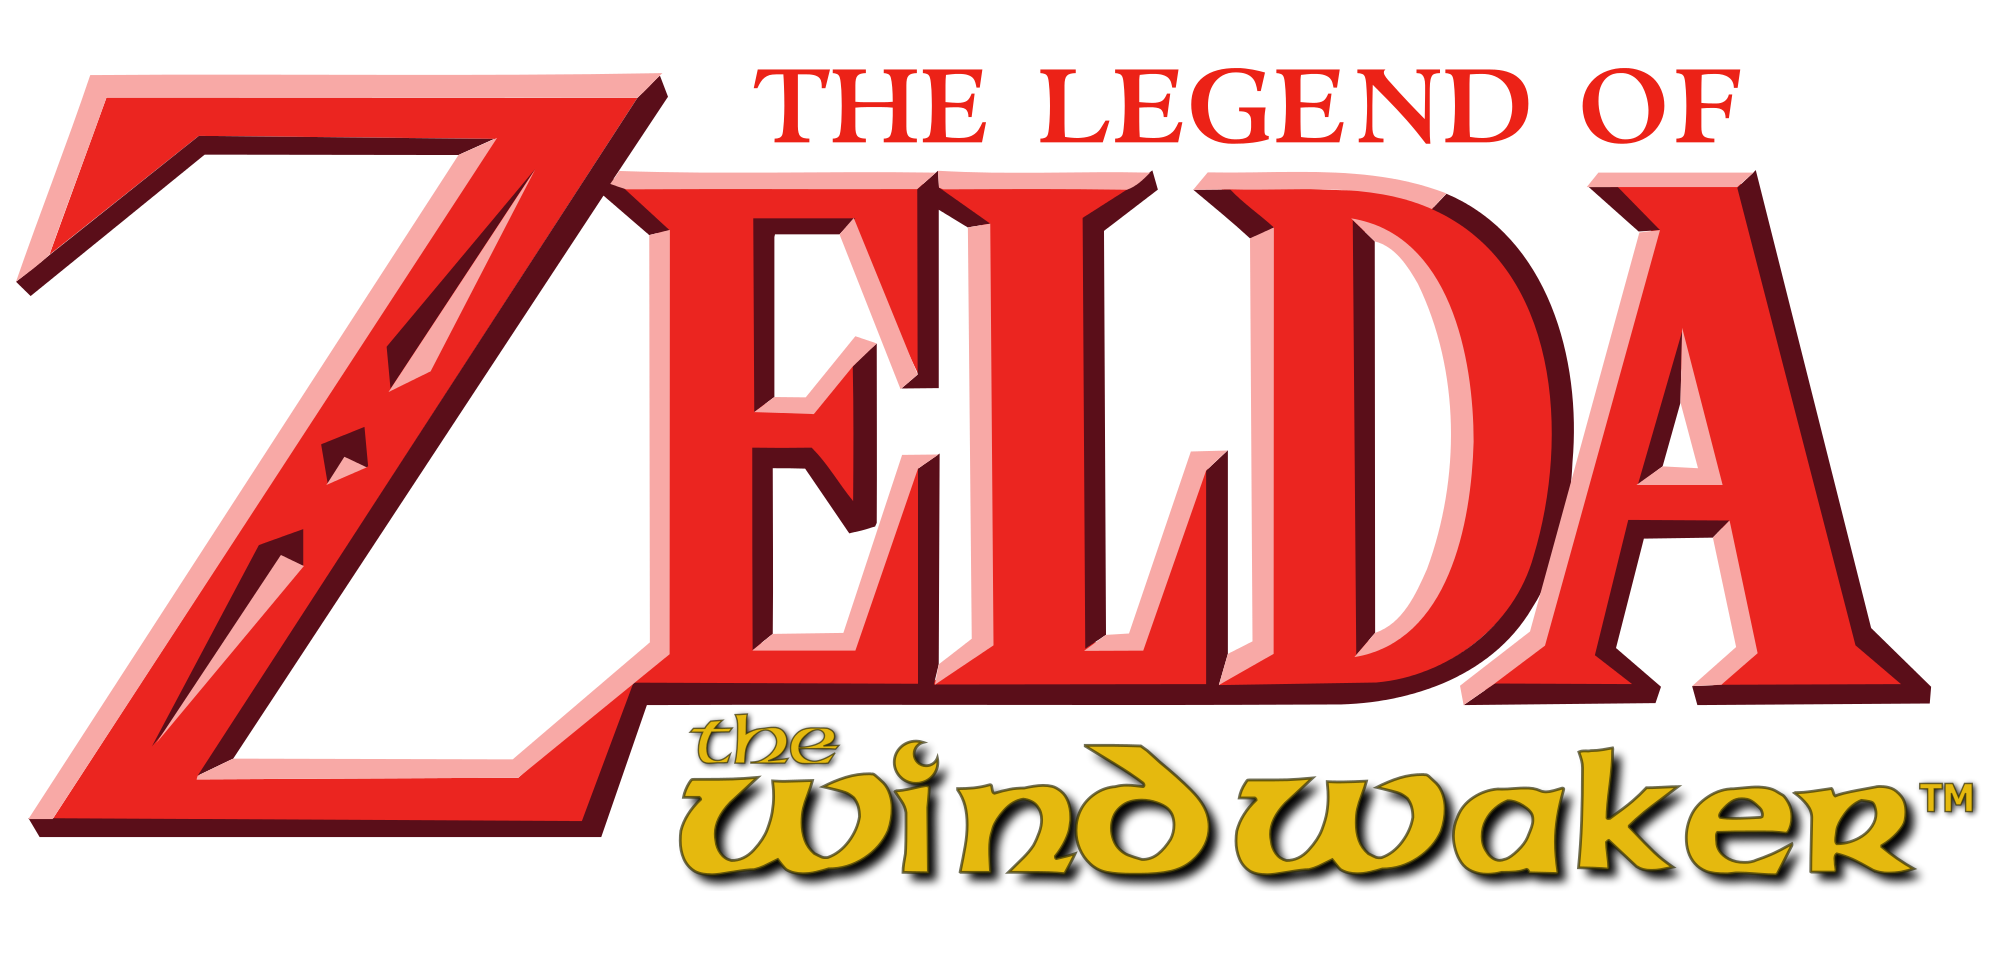 Wind waker hd logo png. File the legend of